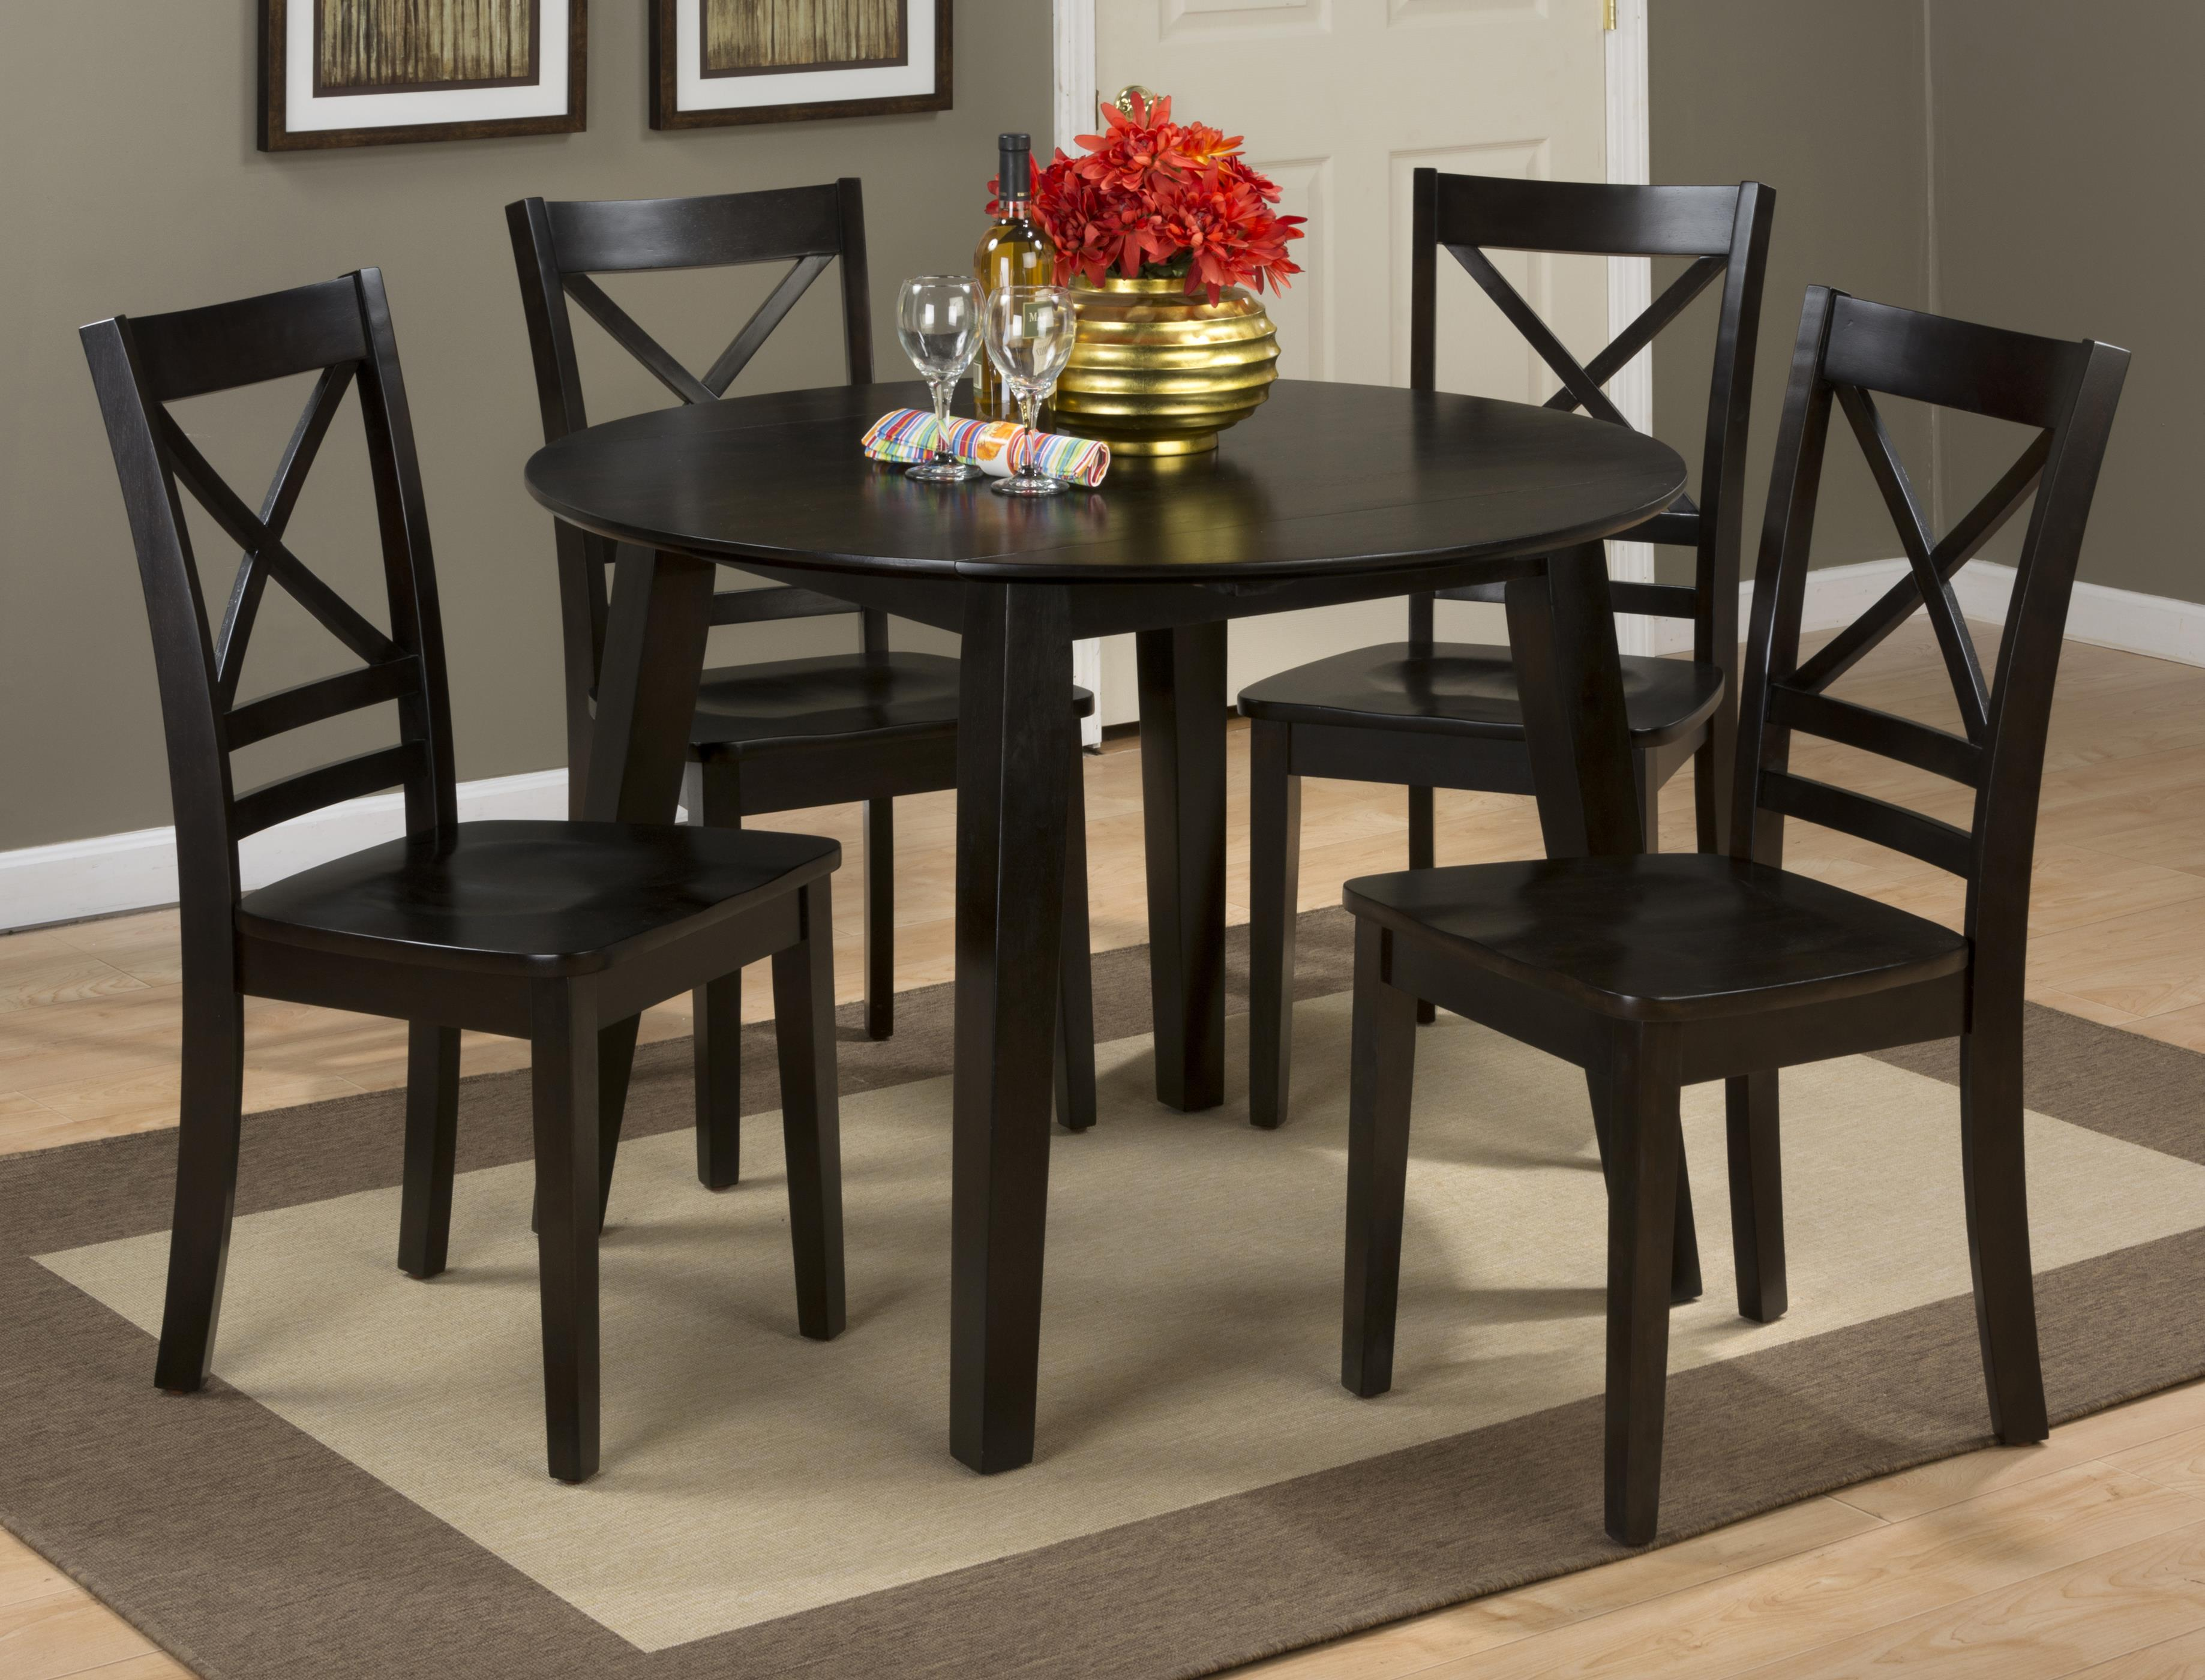 Round Drop Leaf Table That Seats 4 For Dining Areas By Jofran Wolf And Gardiner Wolf Furniture